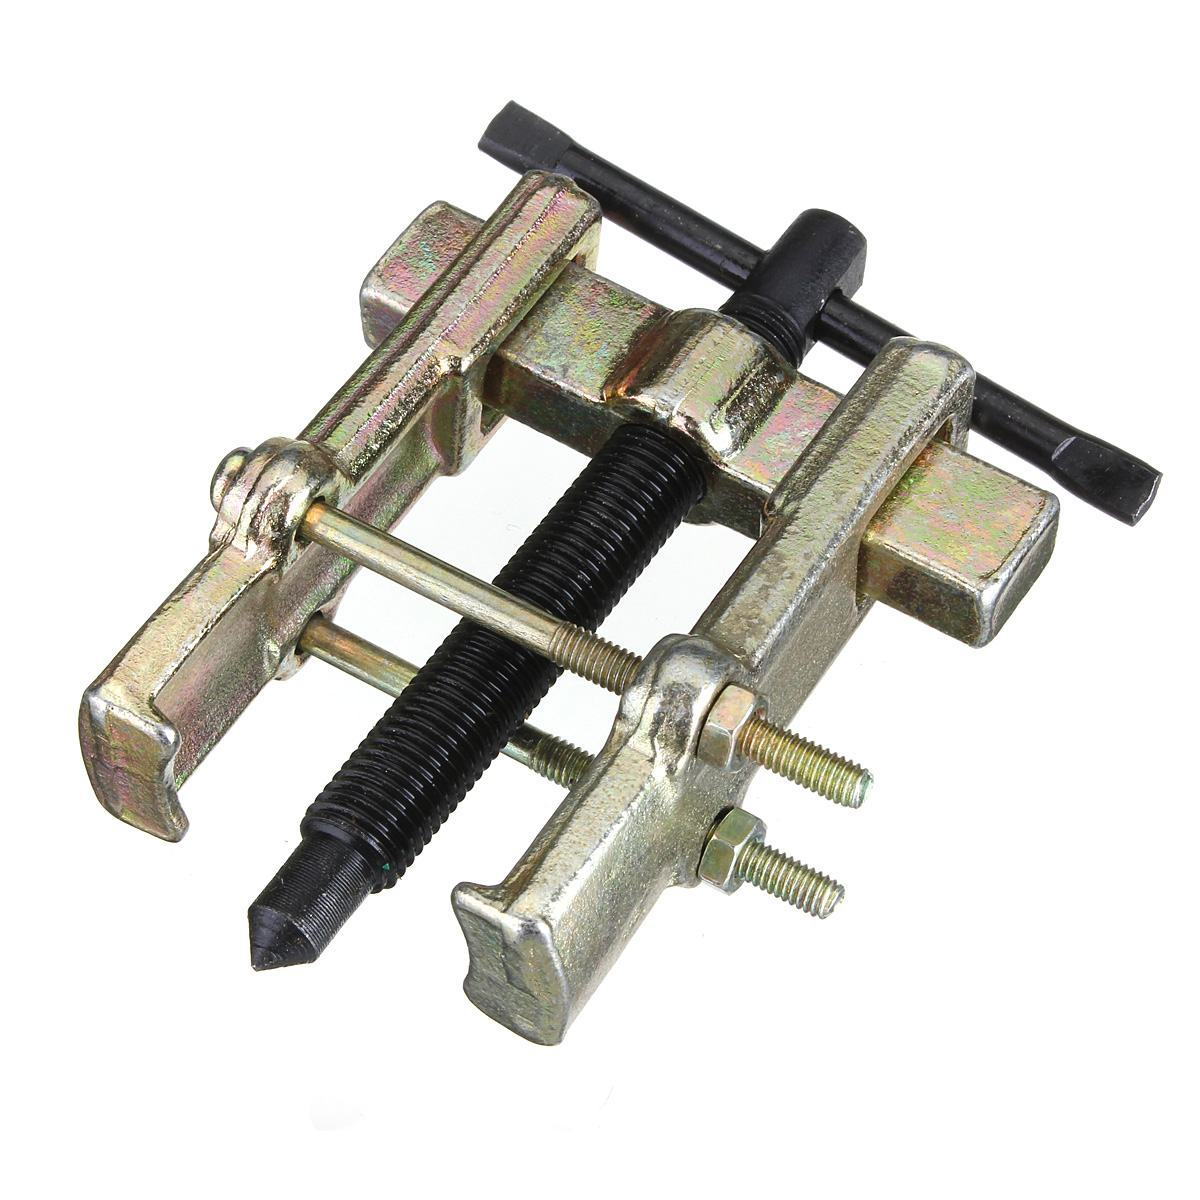 2inch-65mm Two Jaws Gear Puller Bearing Puller Spiral puller Forging Technology Mechine Fixing Supplies2inch-65mm Two Jaws Gear Puller Bearing Puller Spiral puller Forging Technology Mechine Fixing Supplies